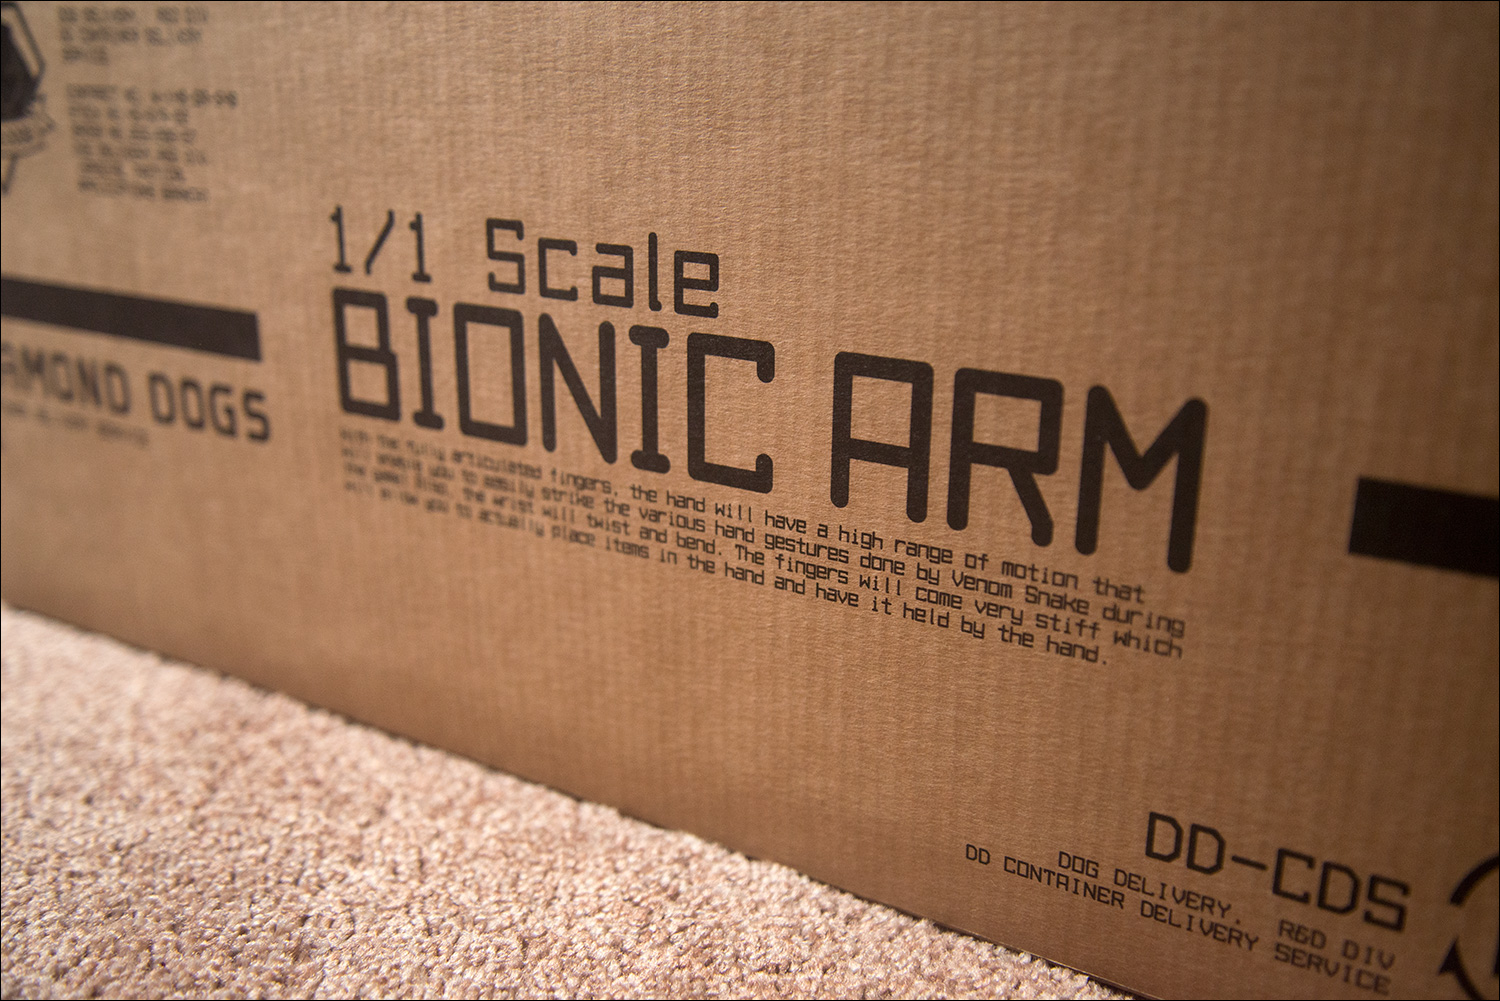 MGSV-Full-Scale-Bionic-Arm-Box-Text